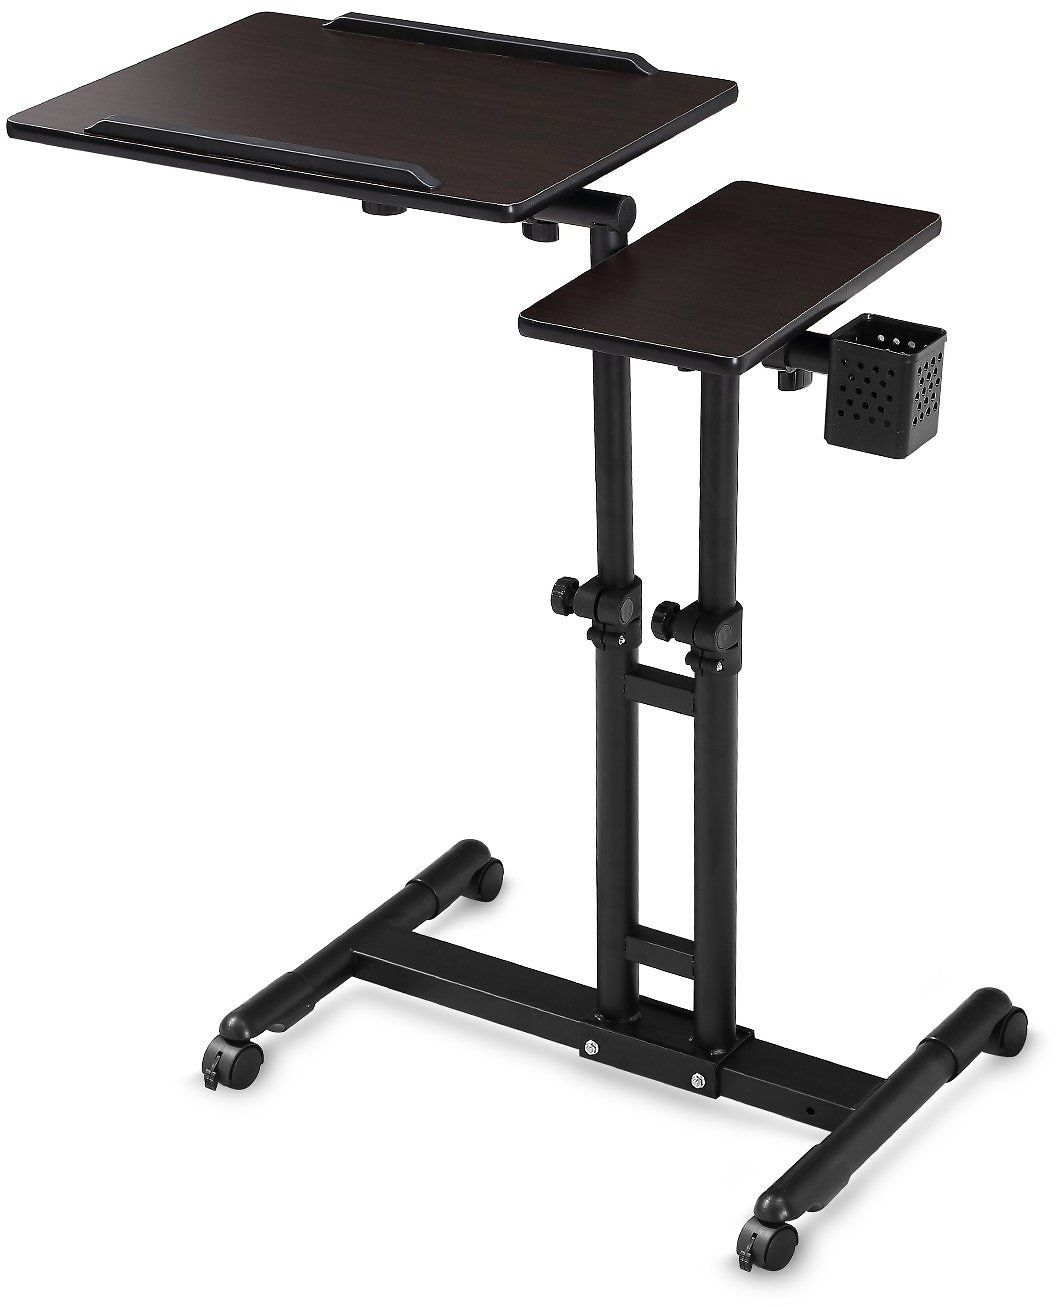 Adjustable Computer Desk Height Rolling Laptop Carts Portable Table On Wheels Black 1 Computer Desk Height Adjustable Computer Desk Desk Height